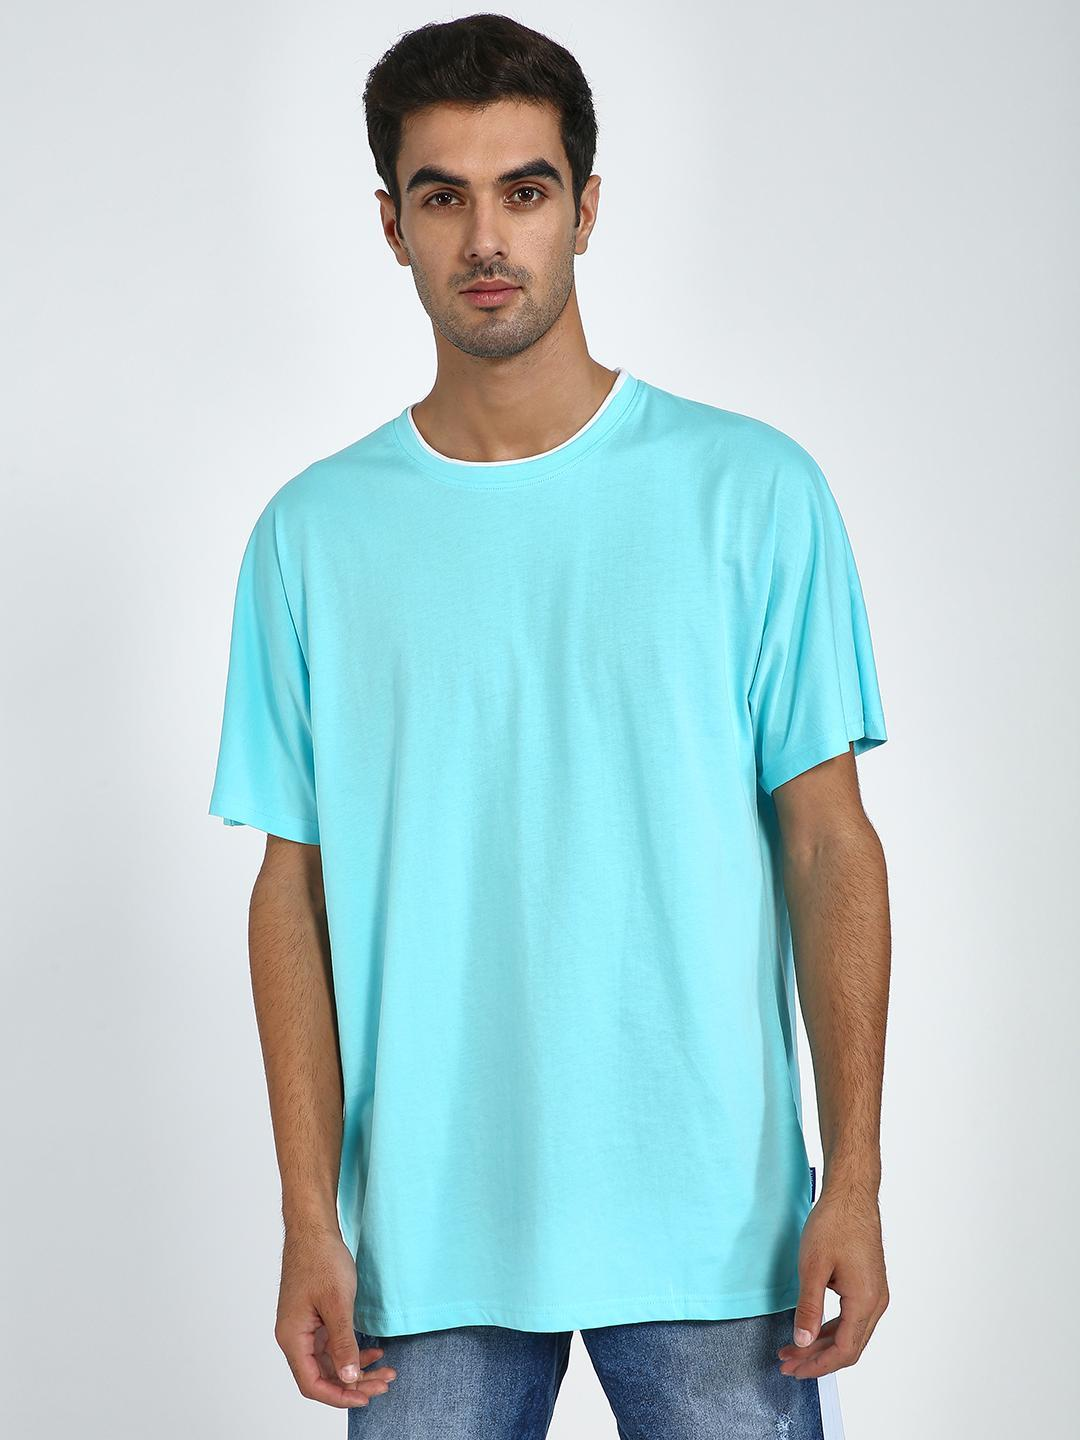 Blue Saint Blue Oversized Round Neck T-shirt 1